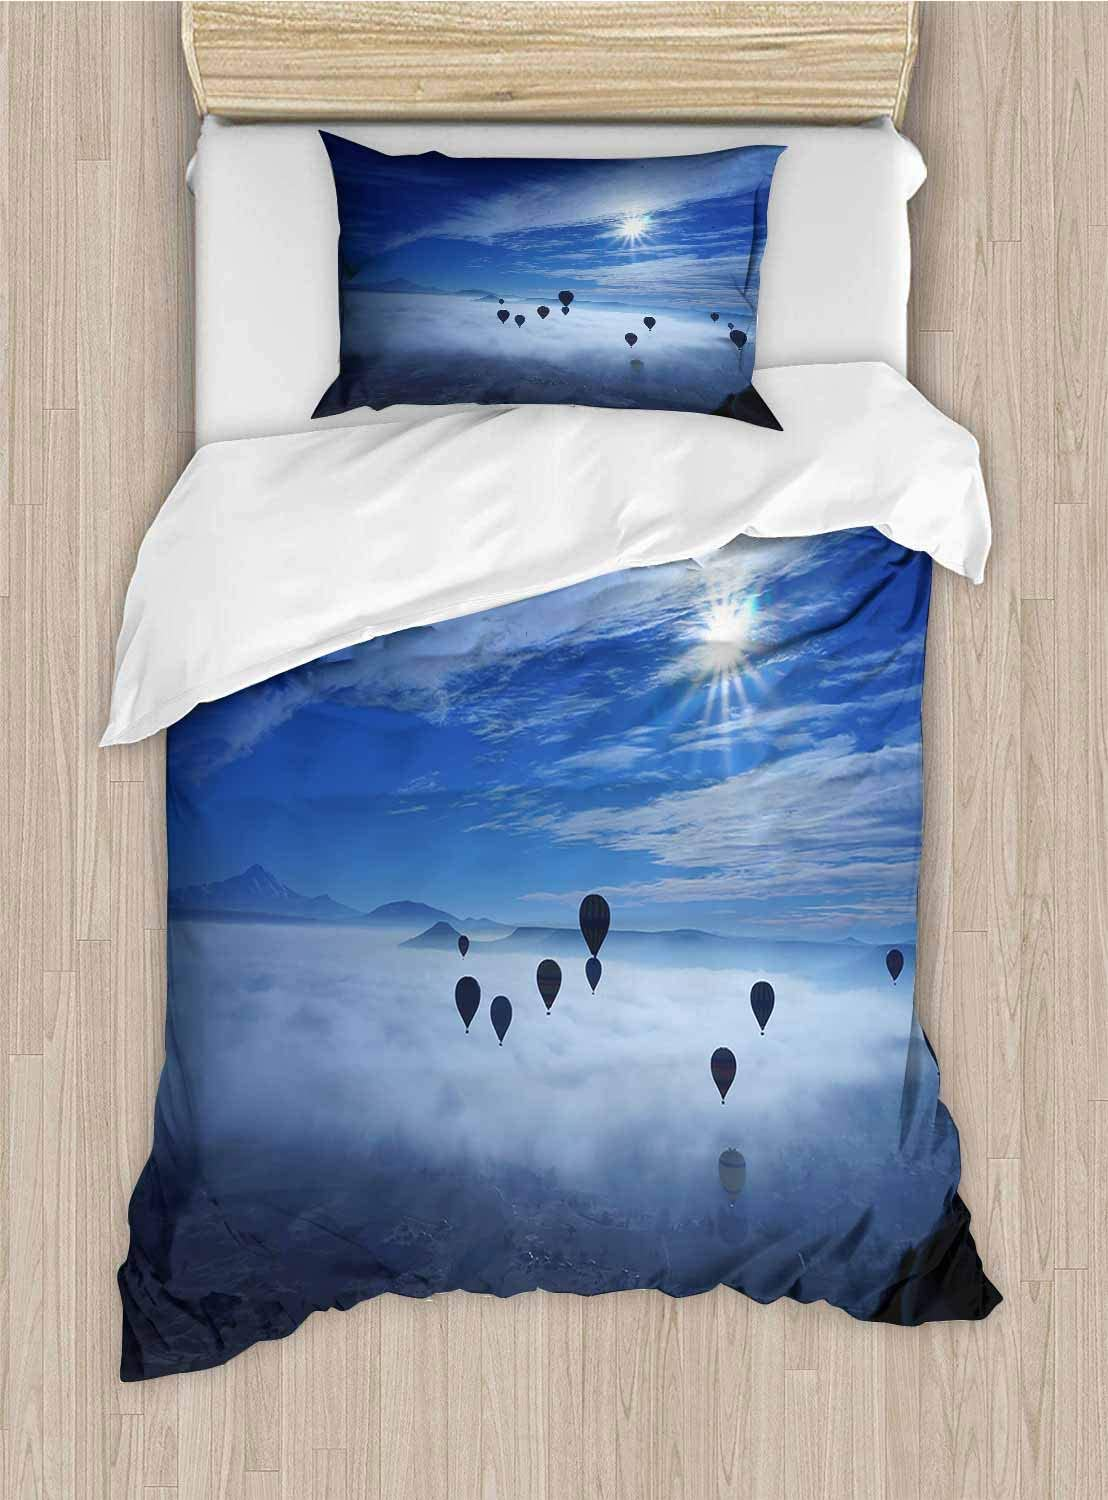 shirlyhome Sleep Restoration Luxury Bed Sheets A hot air Balloon Under The Sun Cool Breathable X-Long Twin